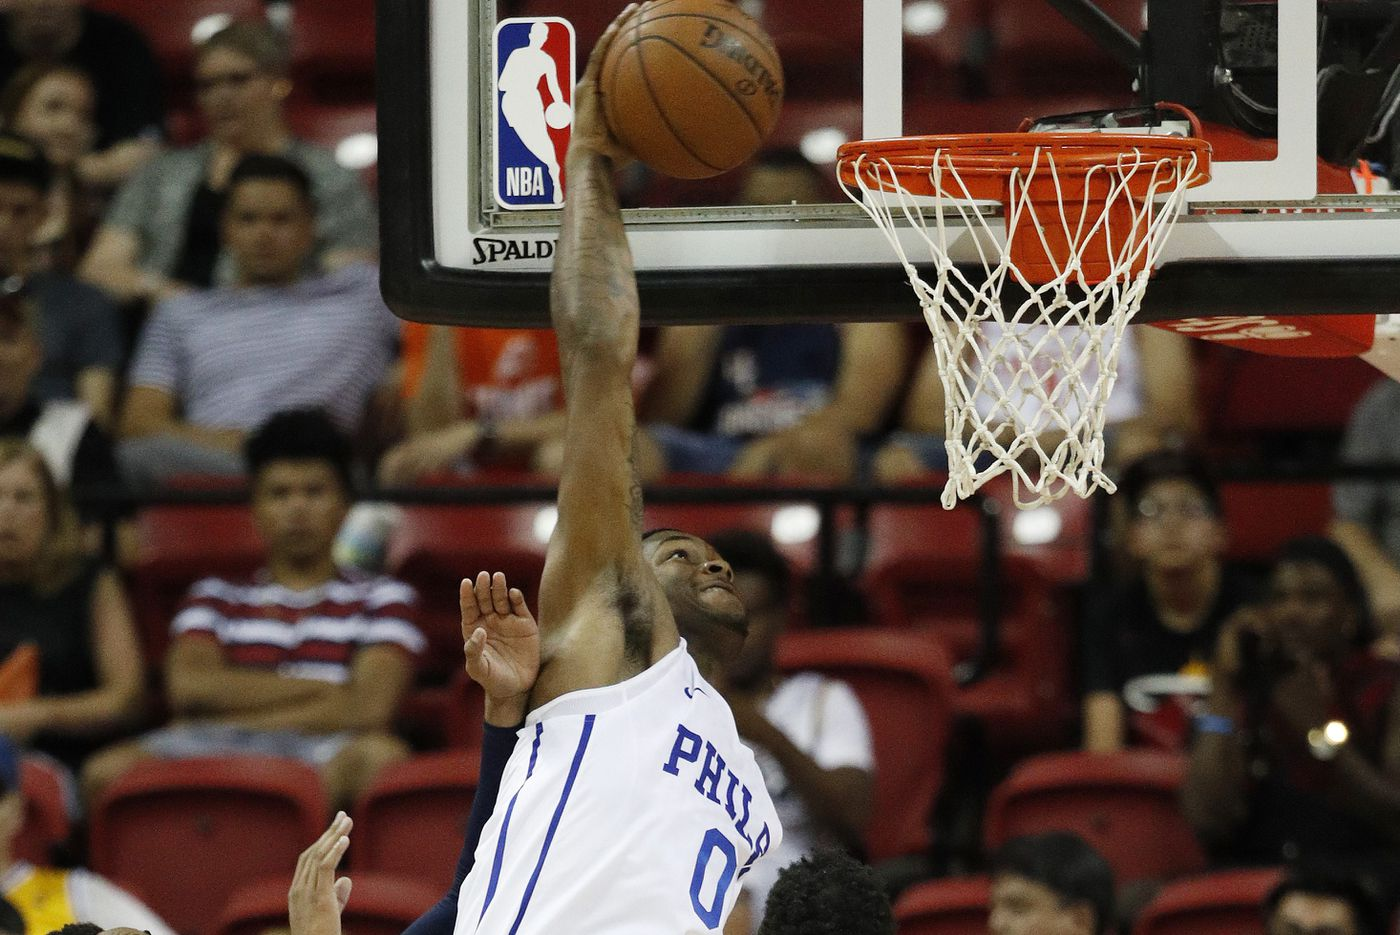 Cameron Oliver's summer league play with Sixers is turning heads